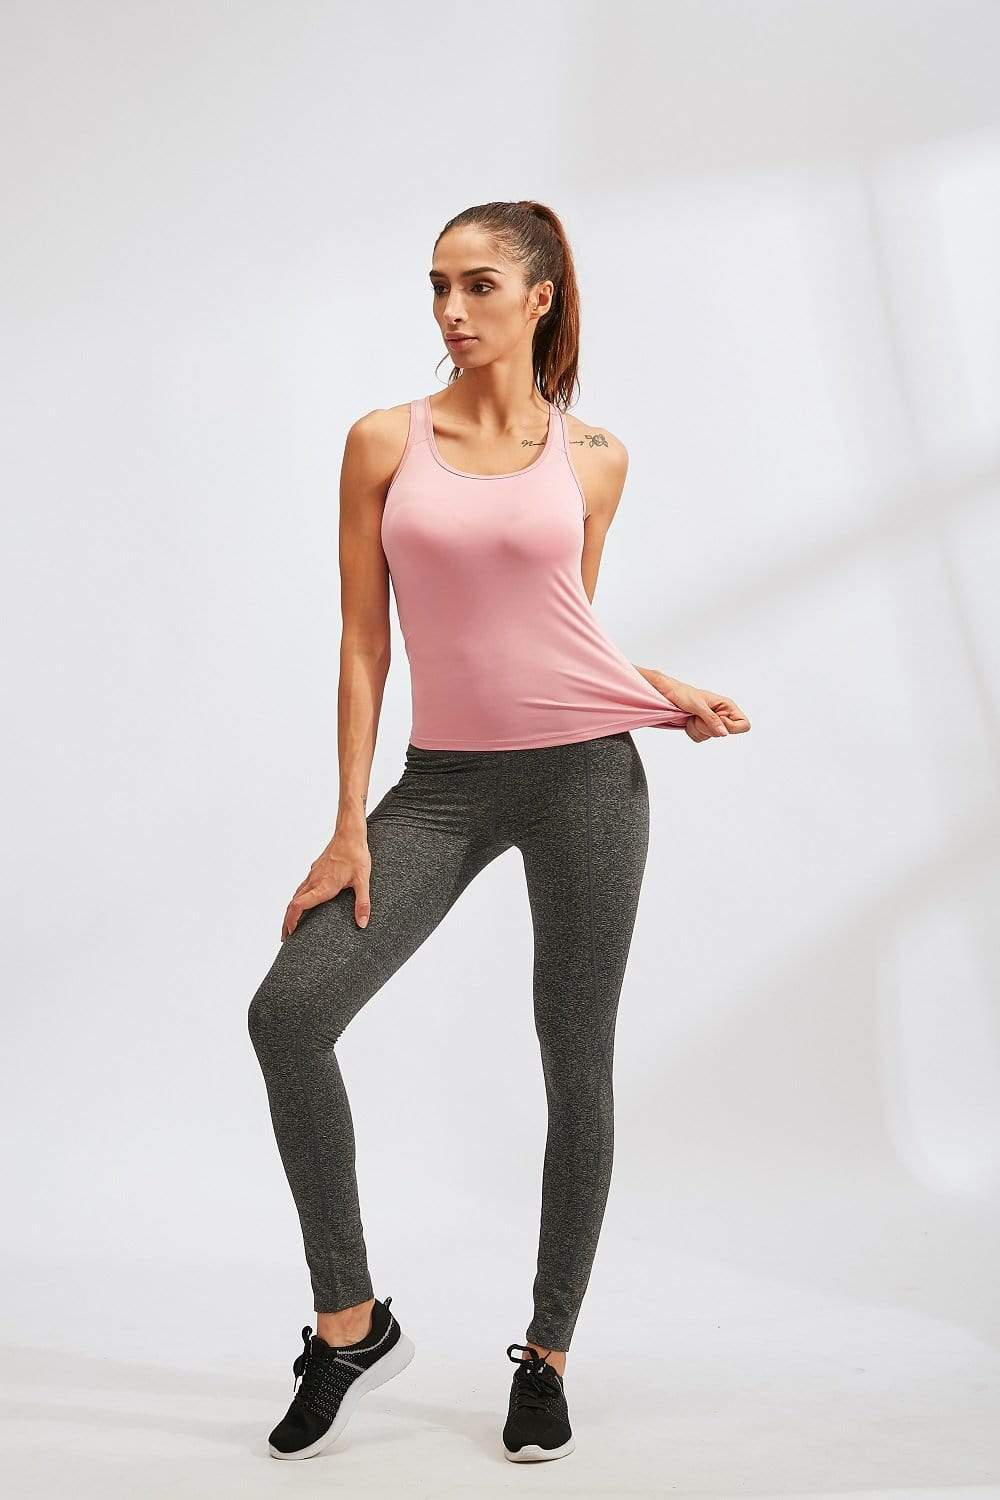 Women's Yoga Sexy Tight-fitting Vest